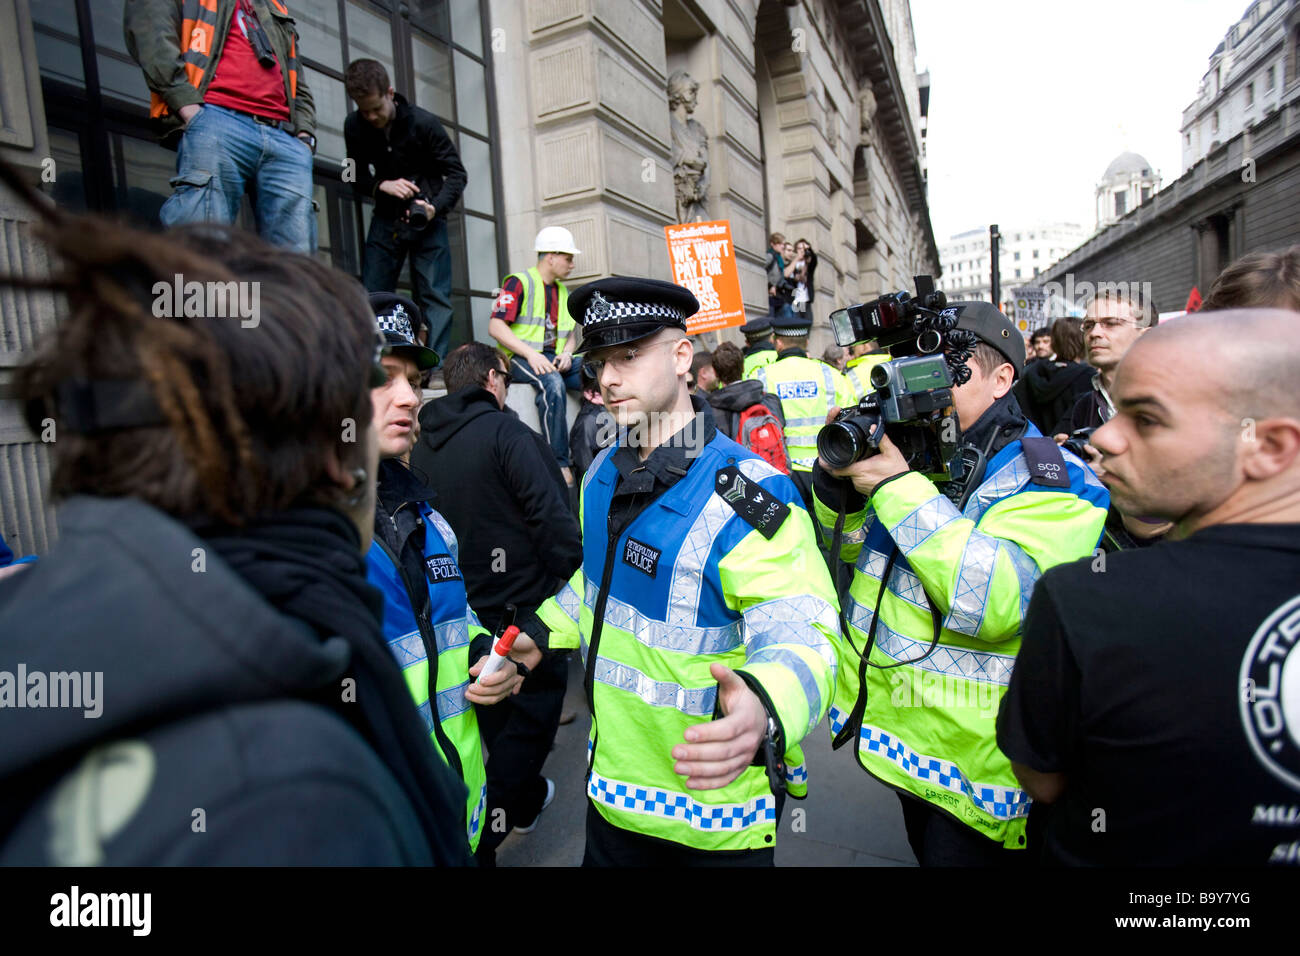 Thousands of protesters marched on the Bank of England in the city of London - Stock Image